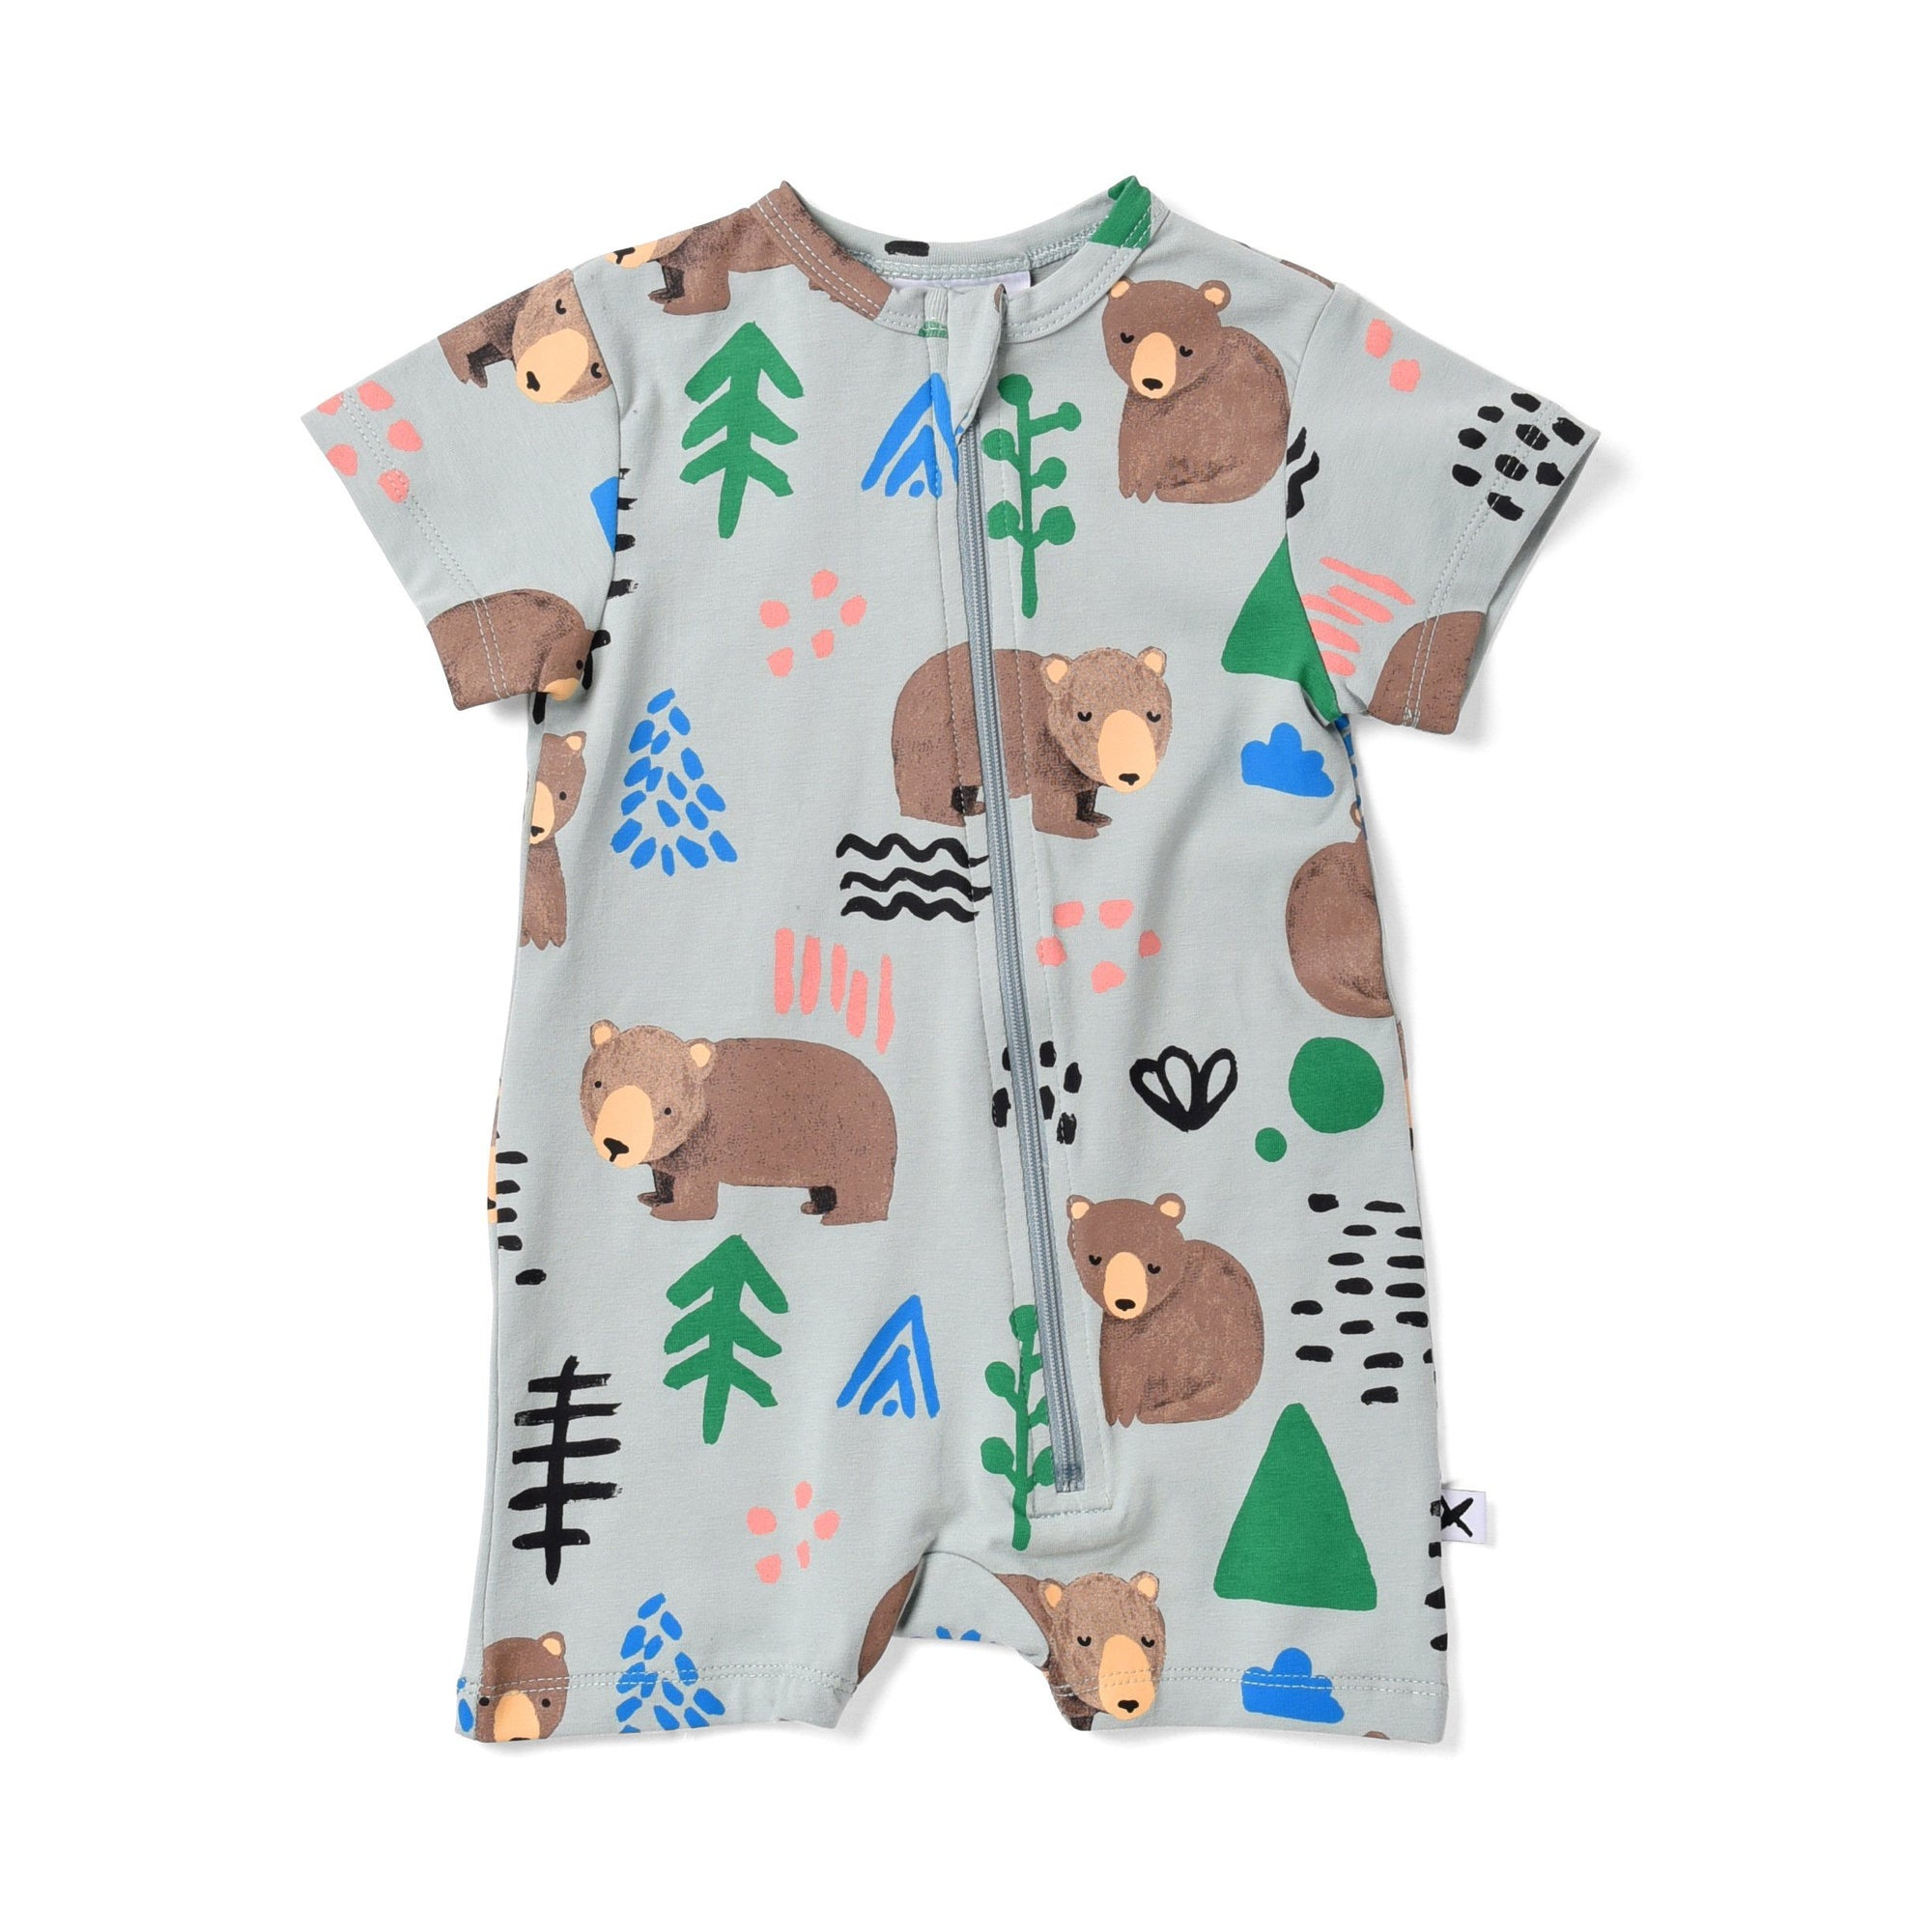 Wilderness Zippy Suit